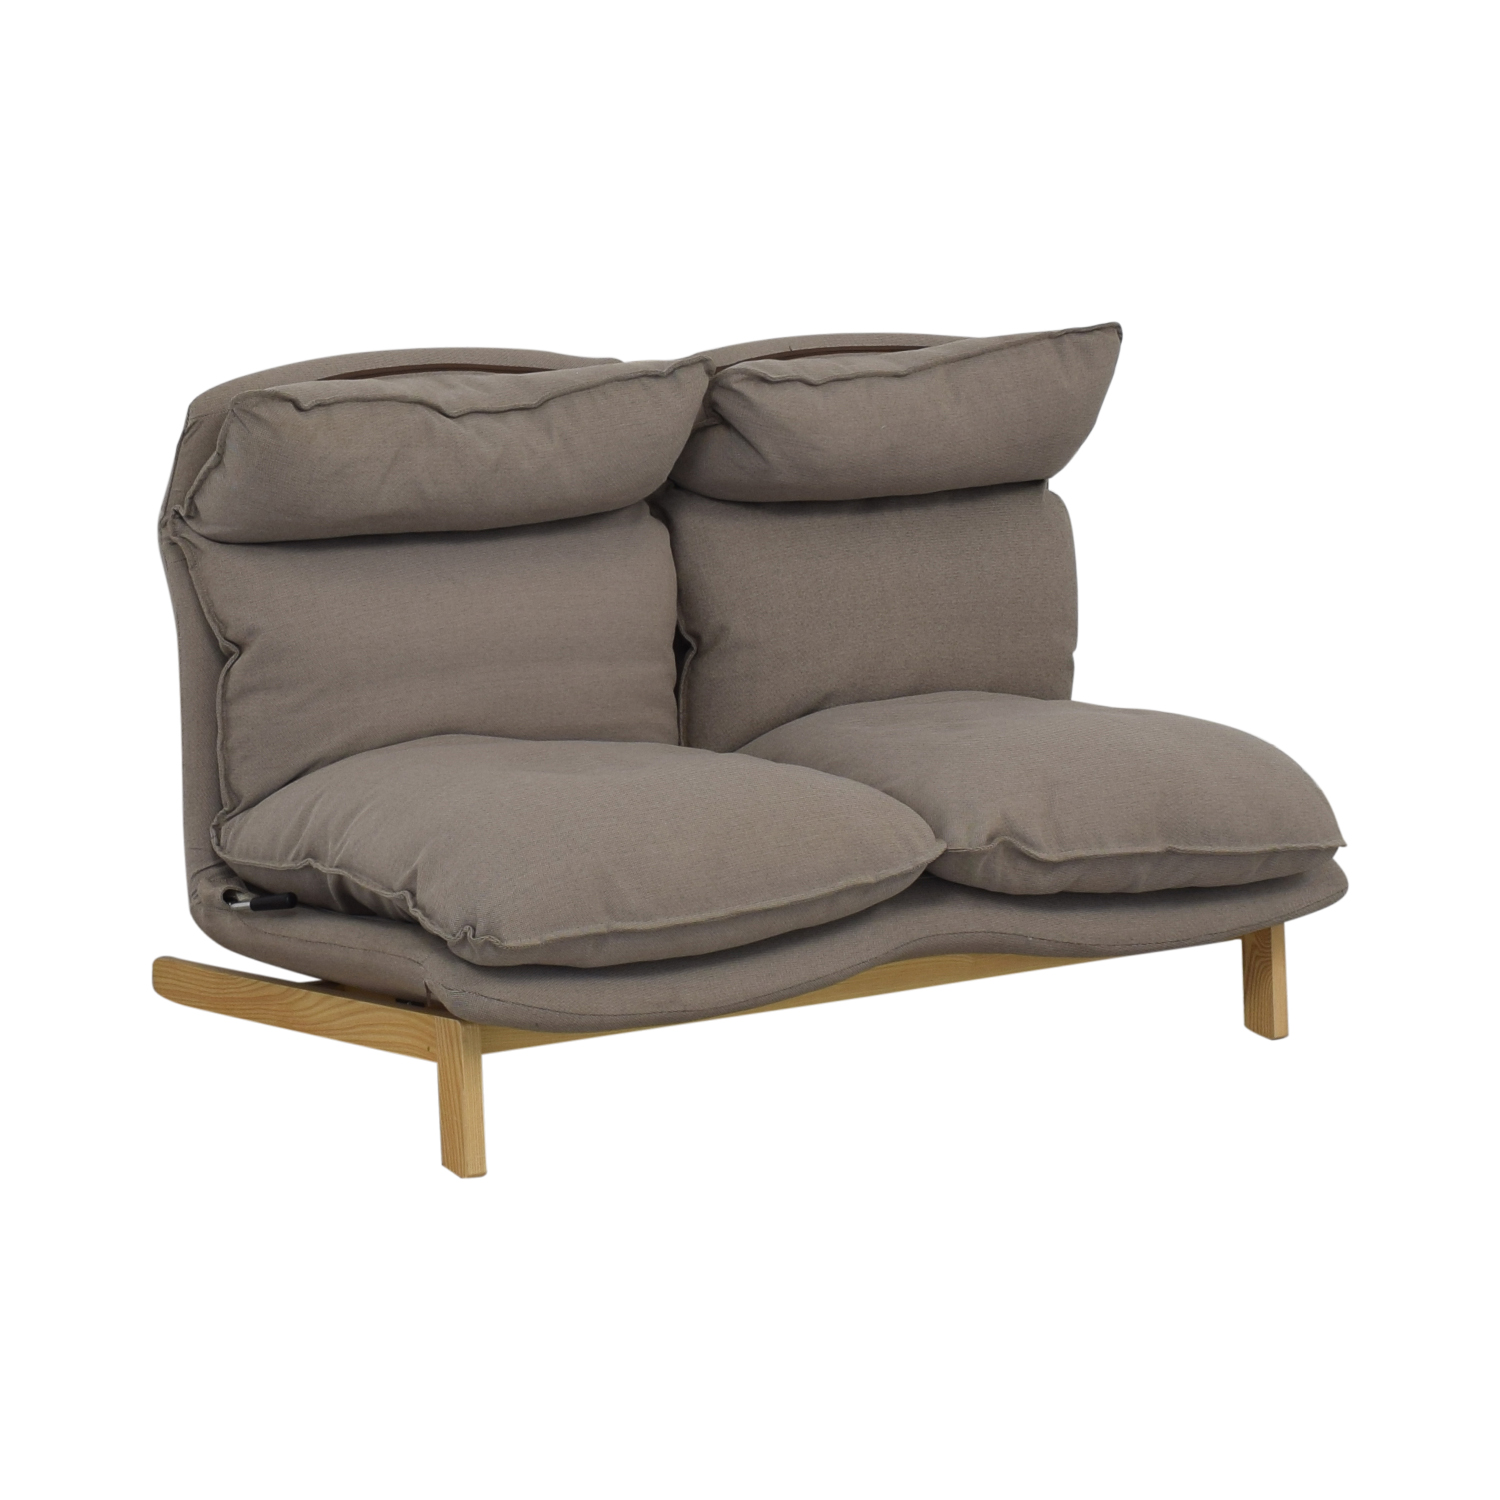 54 Off Muji Muji High Back Reclining Sofa Sofas